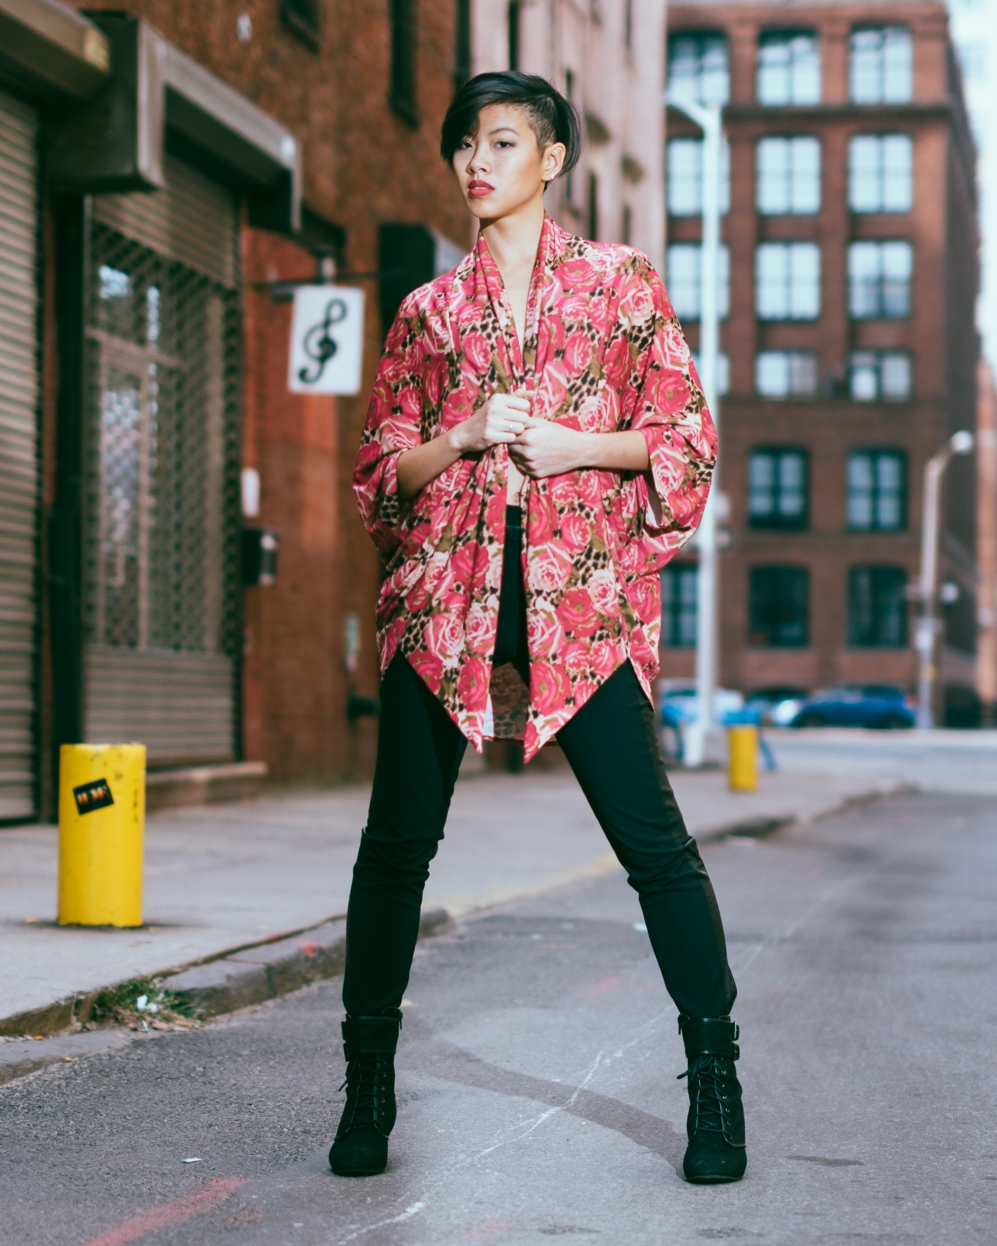 Kimono: The Amme Collection  Model: Joanne L.  Photography: Aaron.Hx